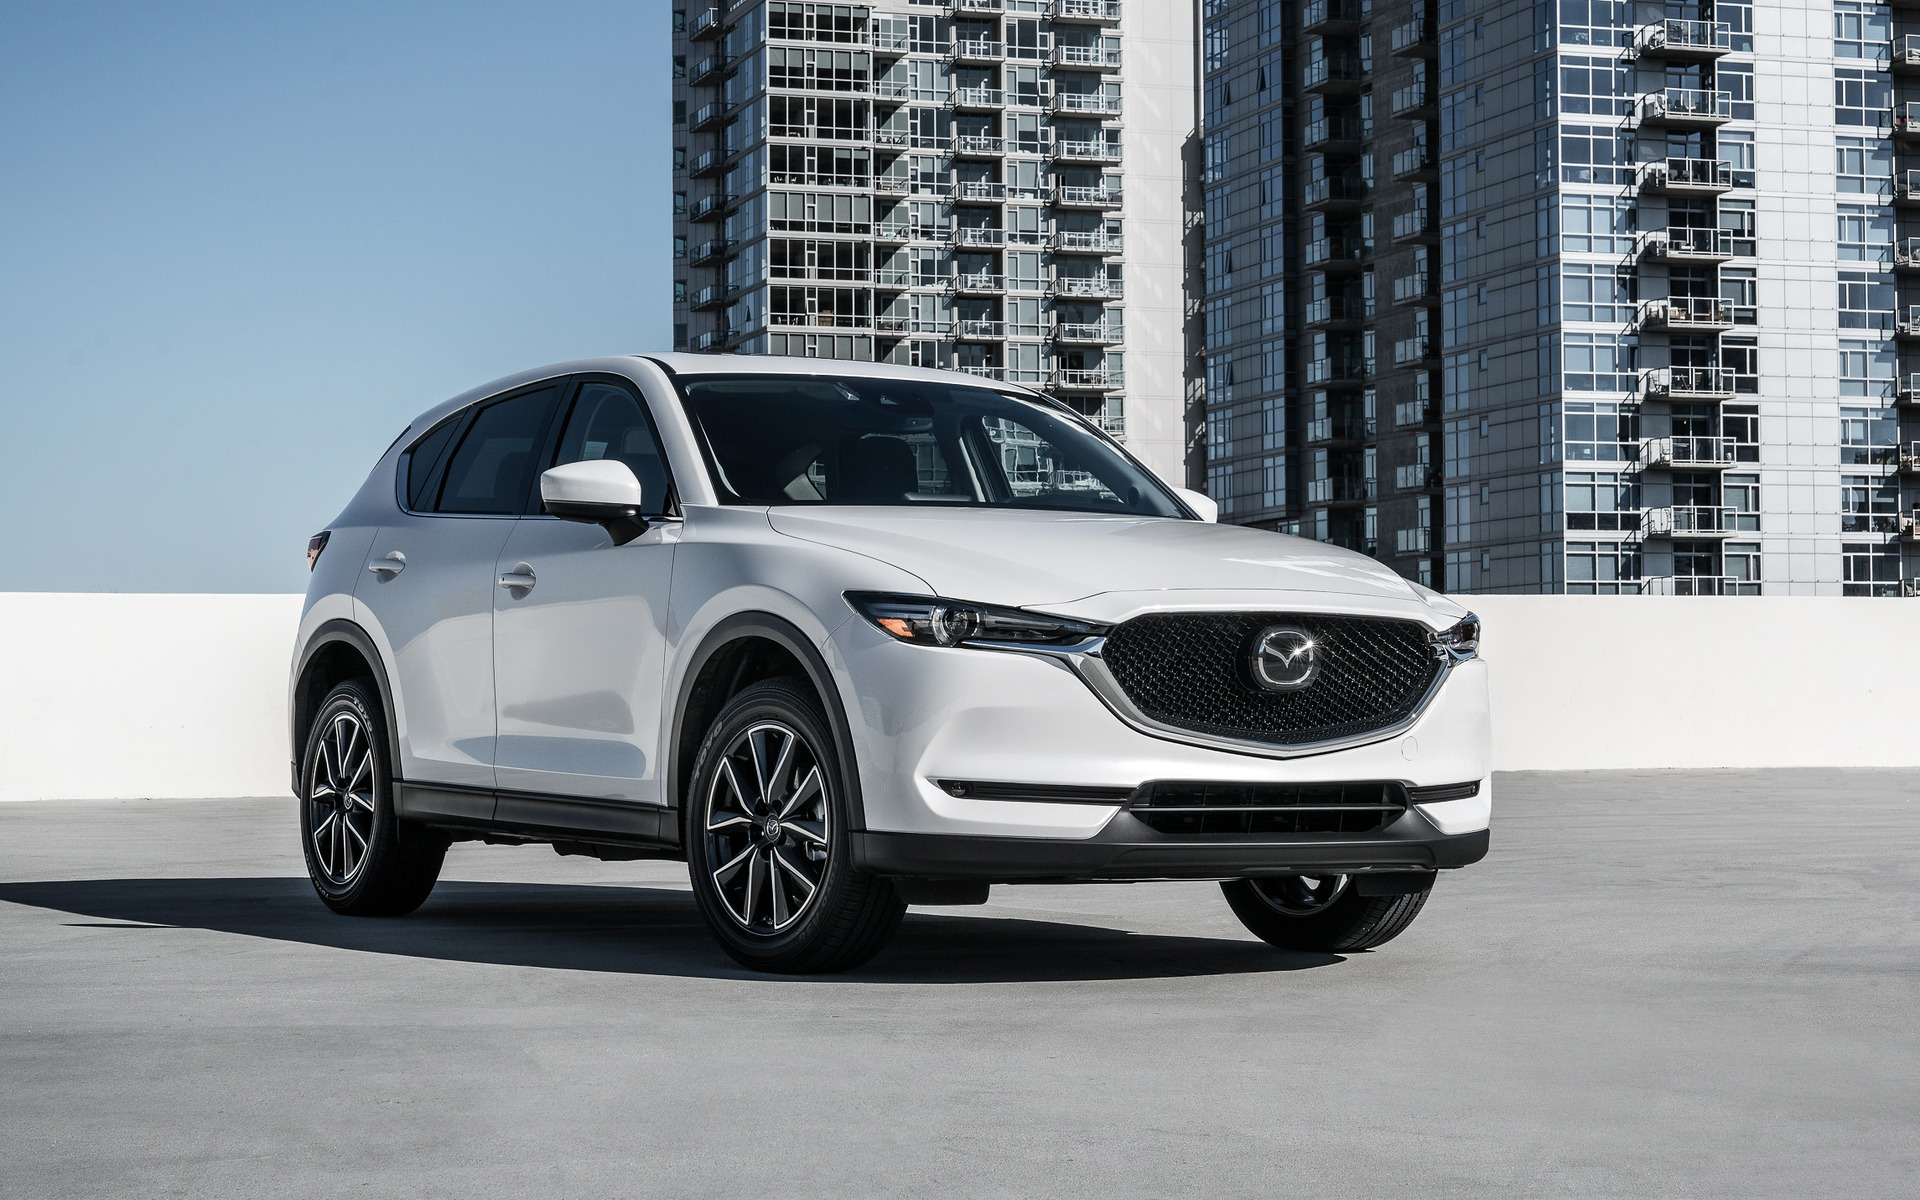 2018 Mazda CX-5: Redesign, Styling, Changes, Price >> Mazda Cx 5 The It Factor The Car Guide